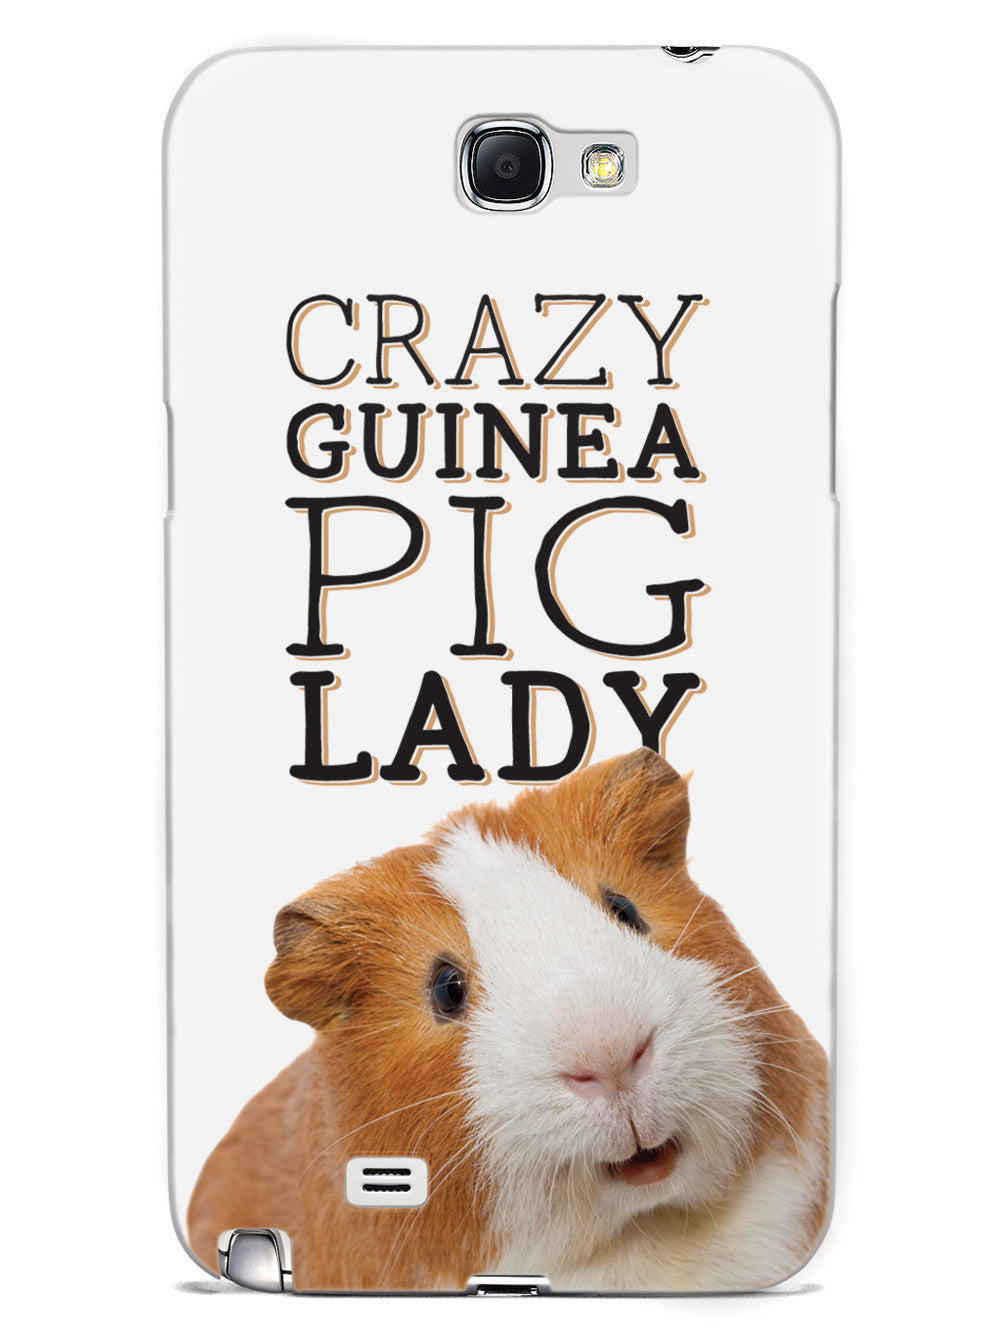 Crazy Guinea Pig Lady Case